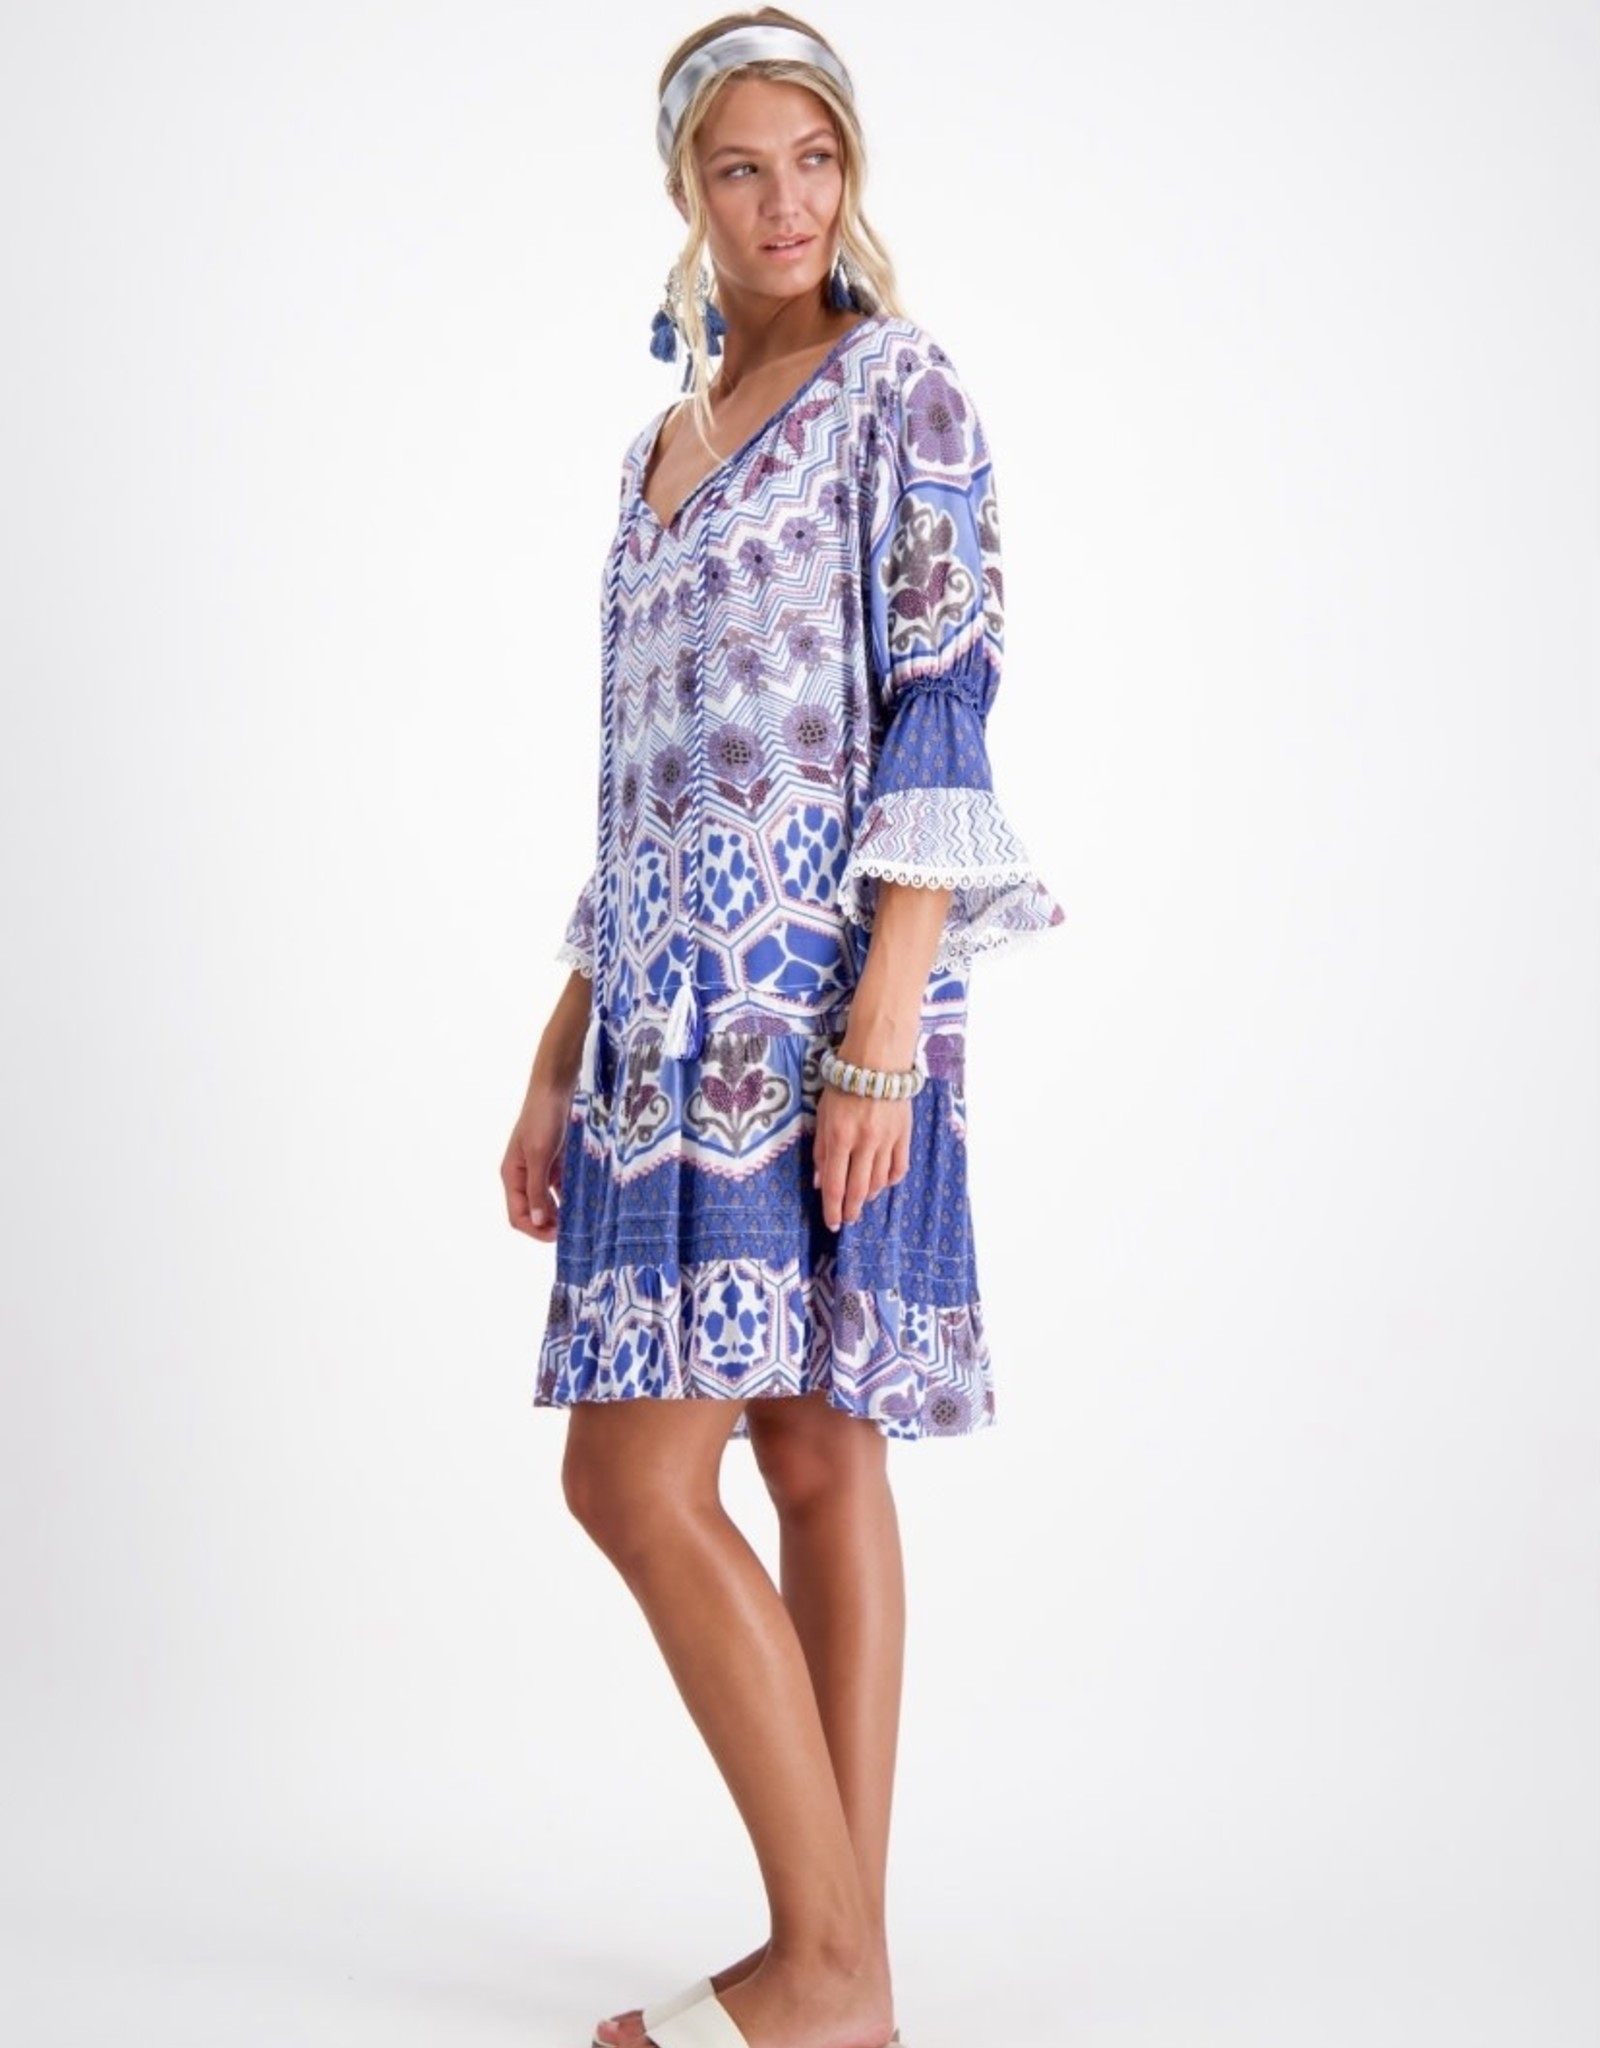 Naudic Naudic 2134 Kasbah Naple Dress